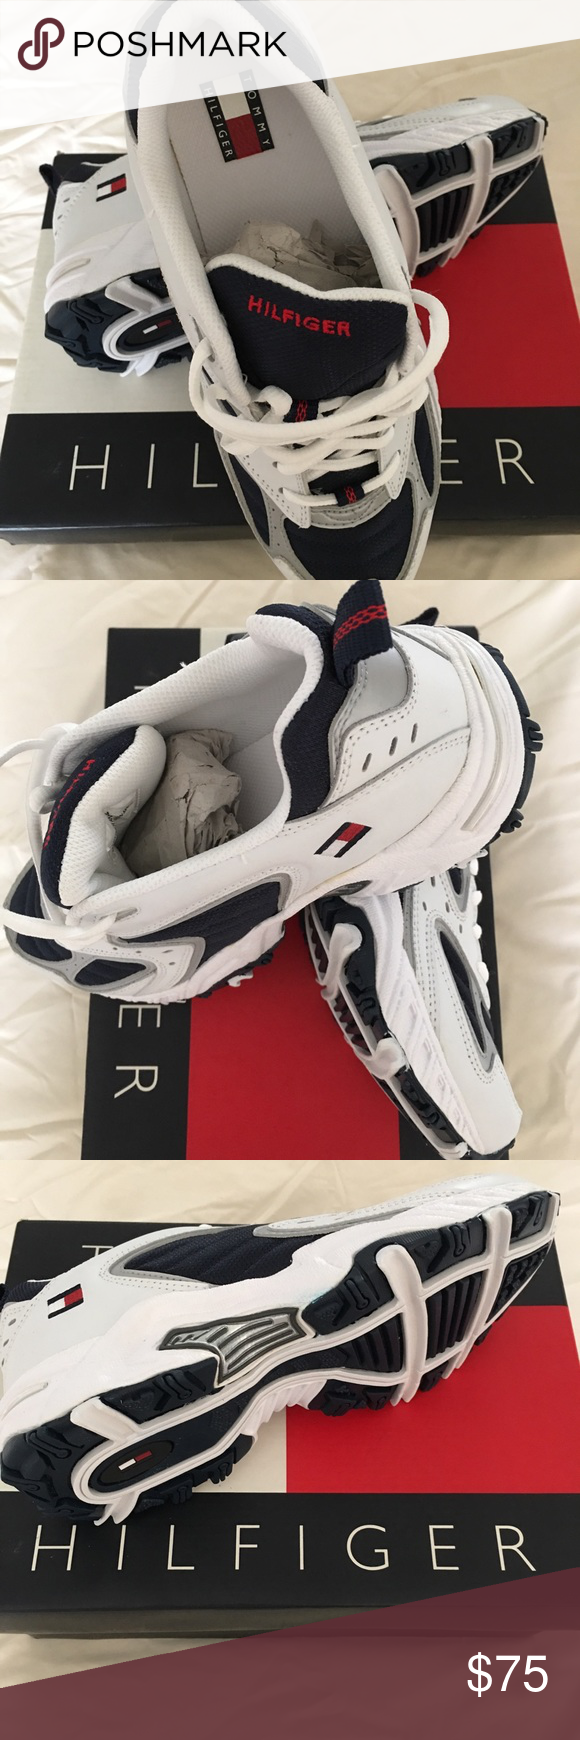 8047b40e09977f Tommy Hilfiger women s sneakers Brand new in box Tommy Hilfiger sneakers  Size 8 Women s White Navy color Tommy Hilfiger Shoes Athletic Shoes